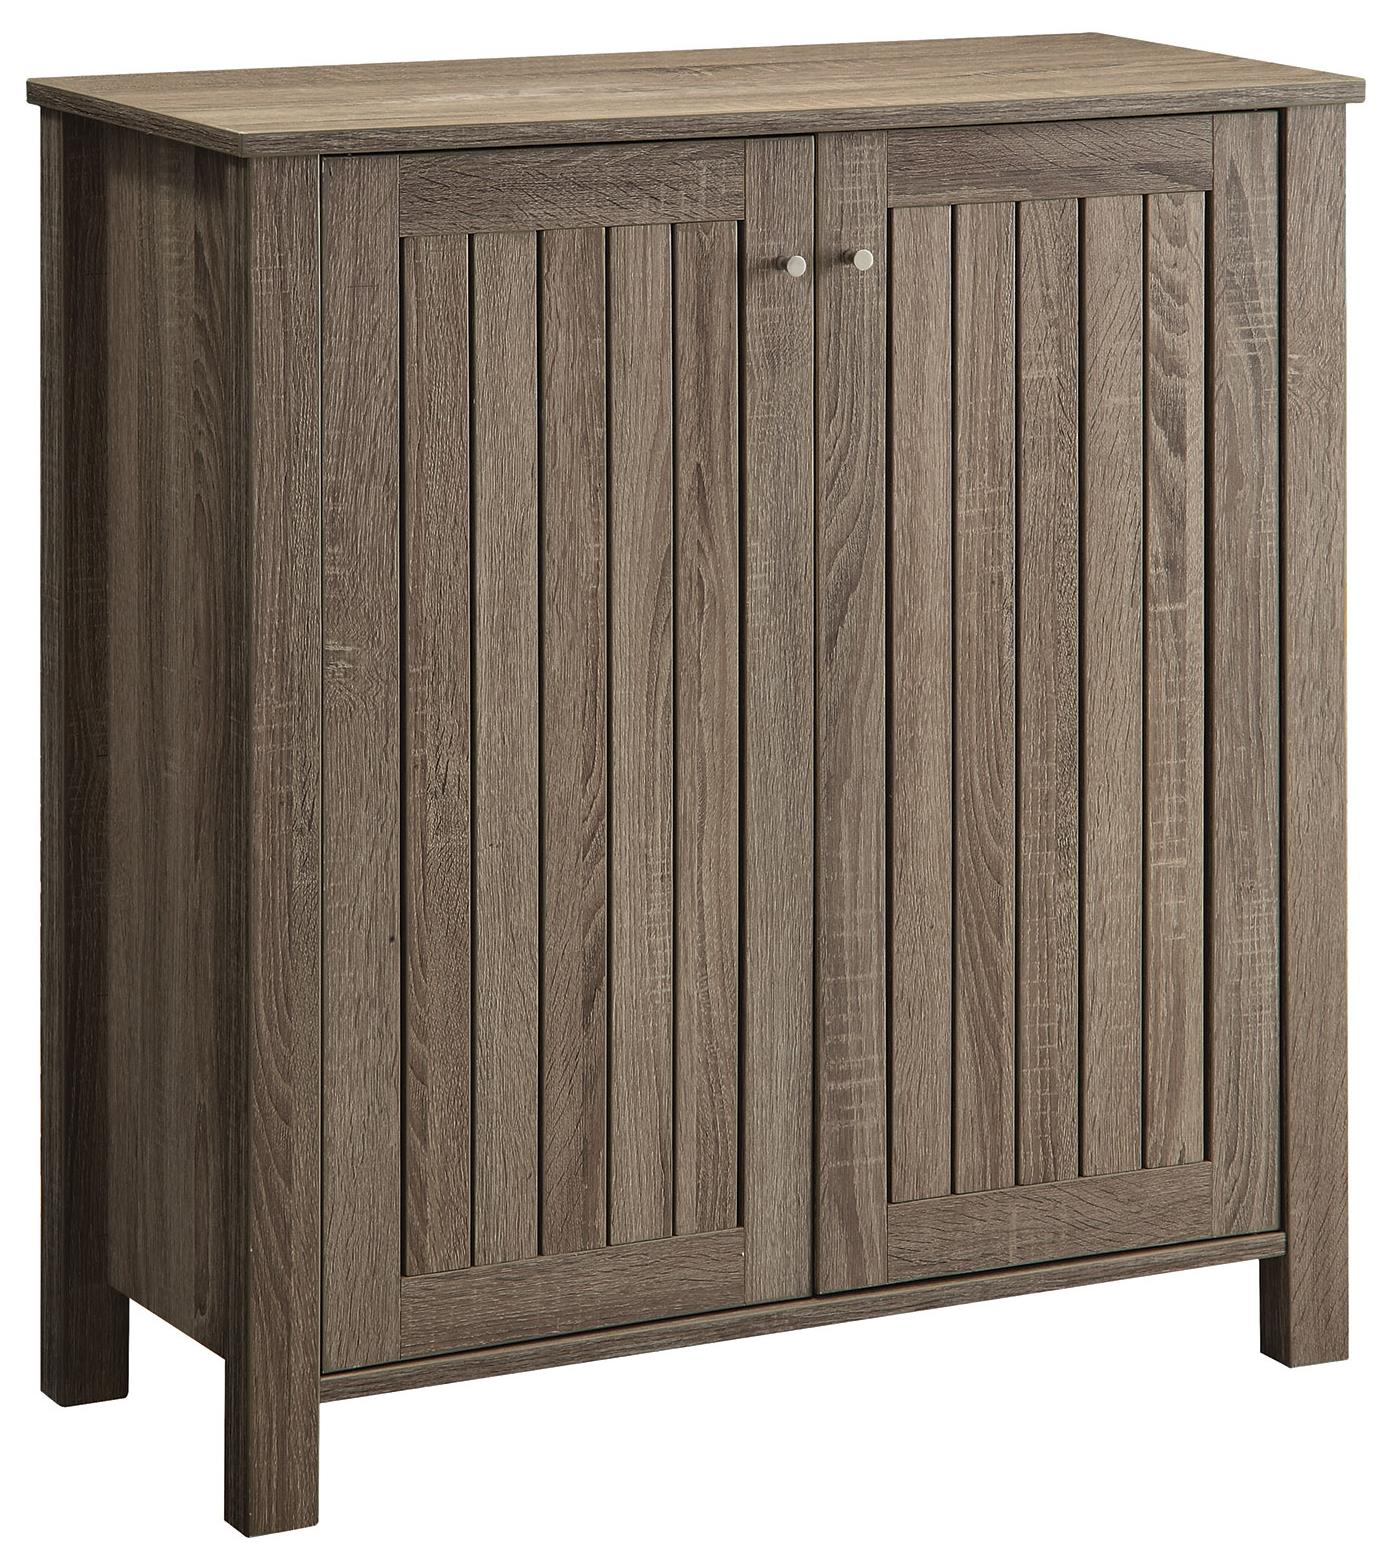 Coaster Accent Cabinets Shoe Cabinet/Accent Cabinet - Item Number: 950551